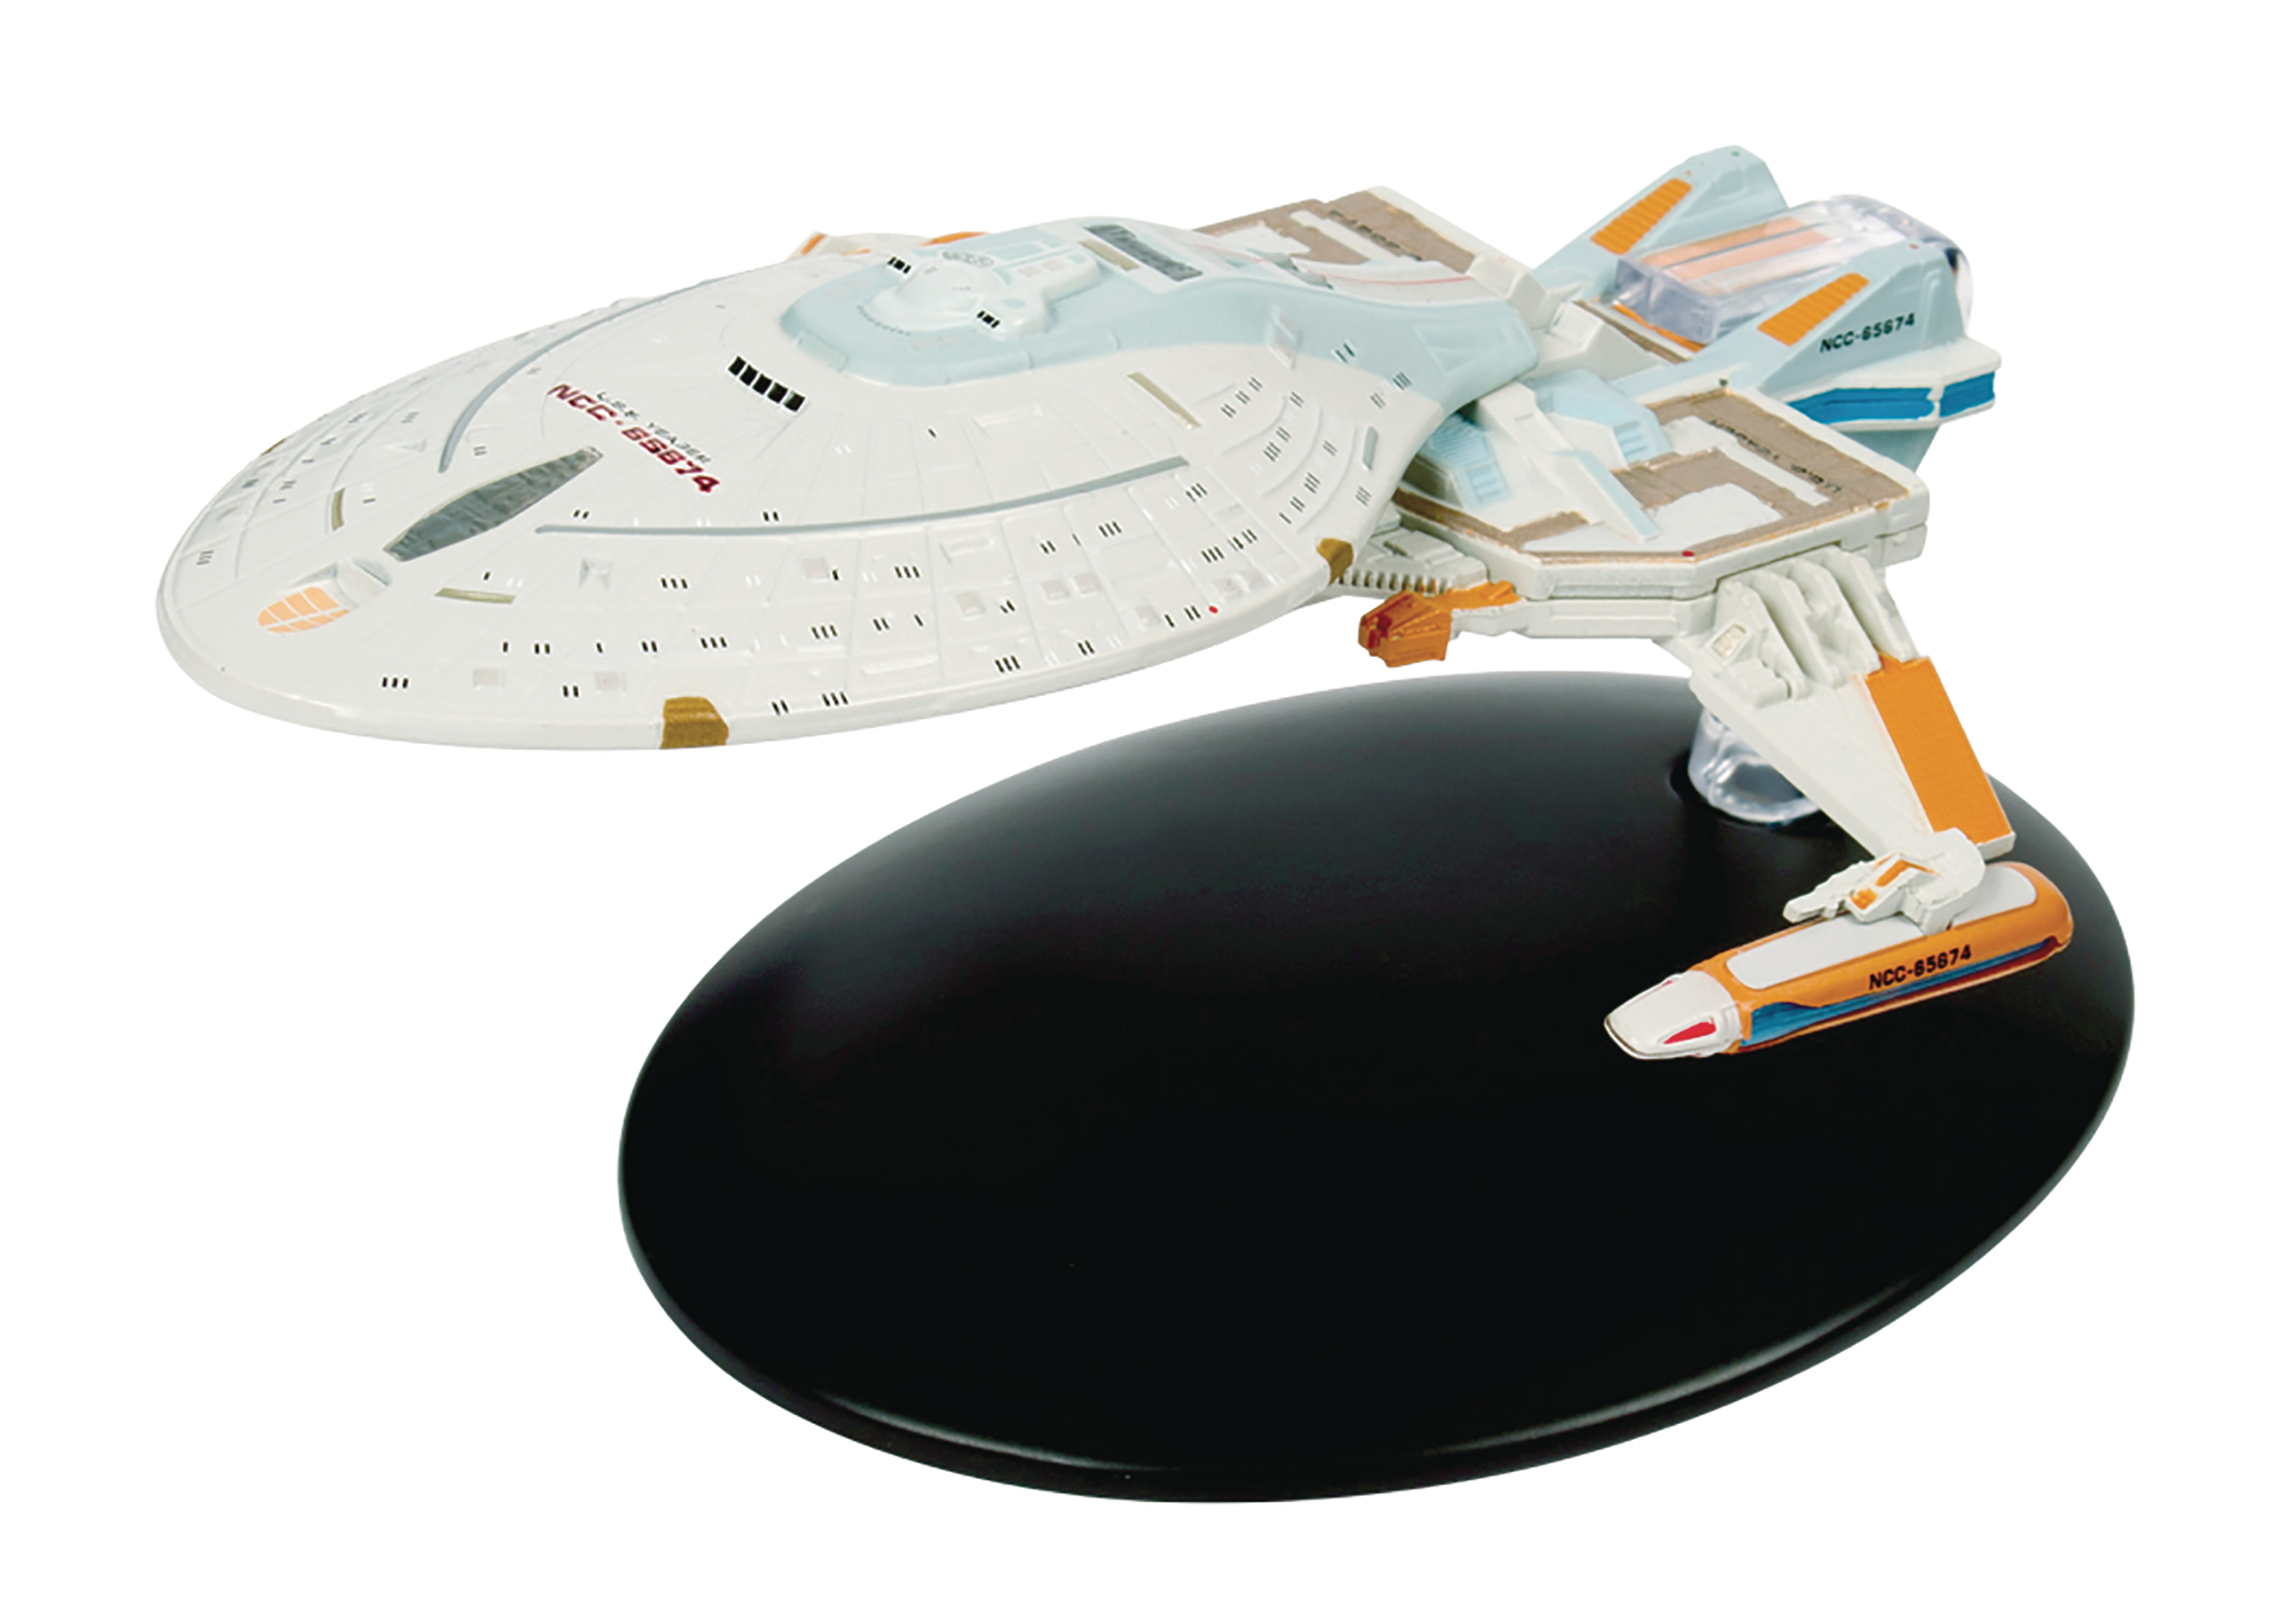 STAR TREK STARSHIPS FIG MAG #122 YEAGER CLASS